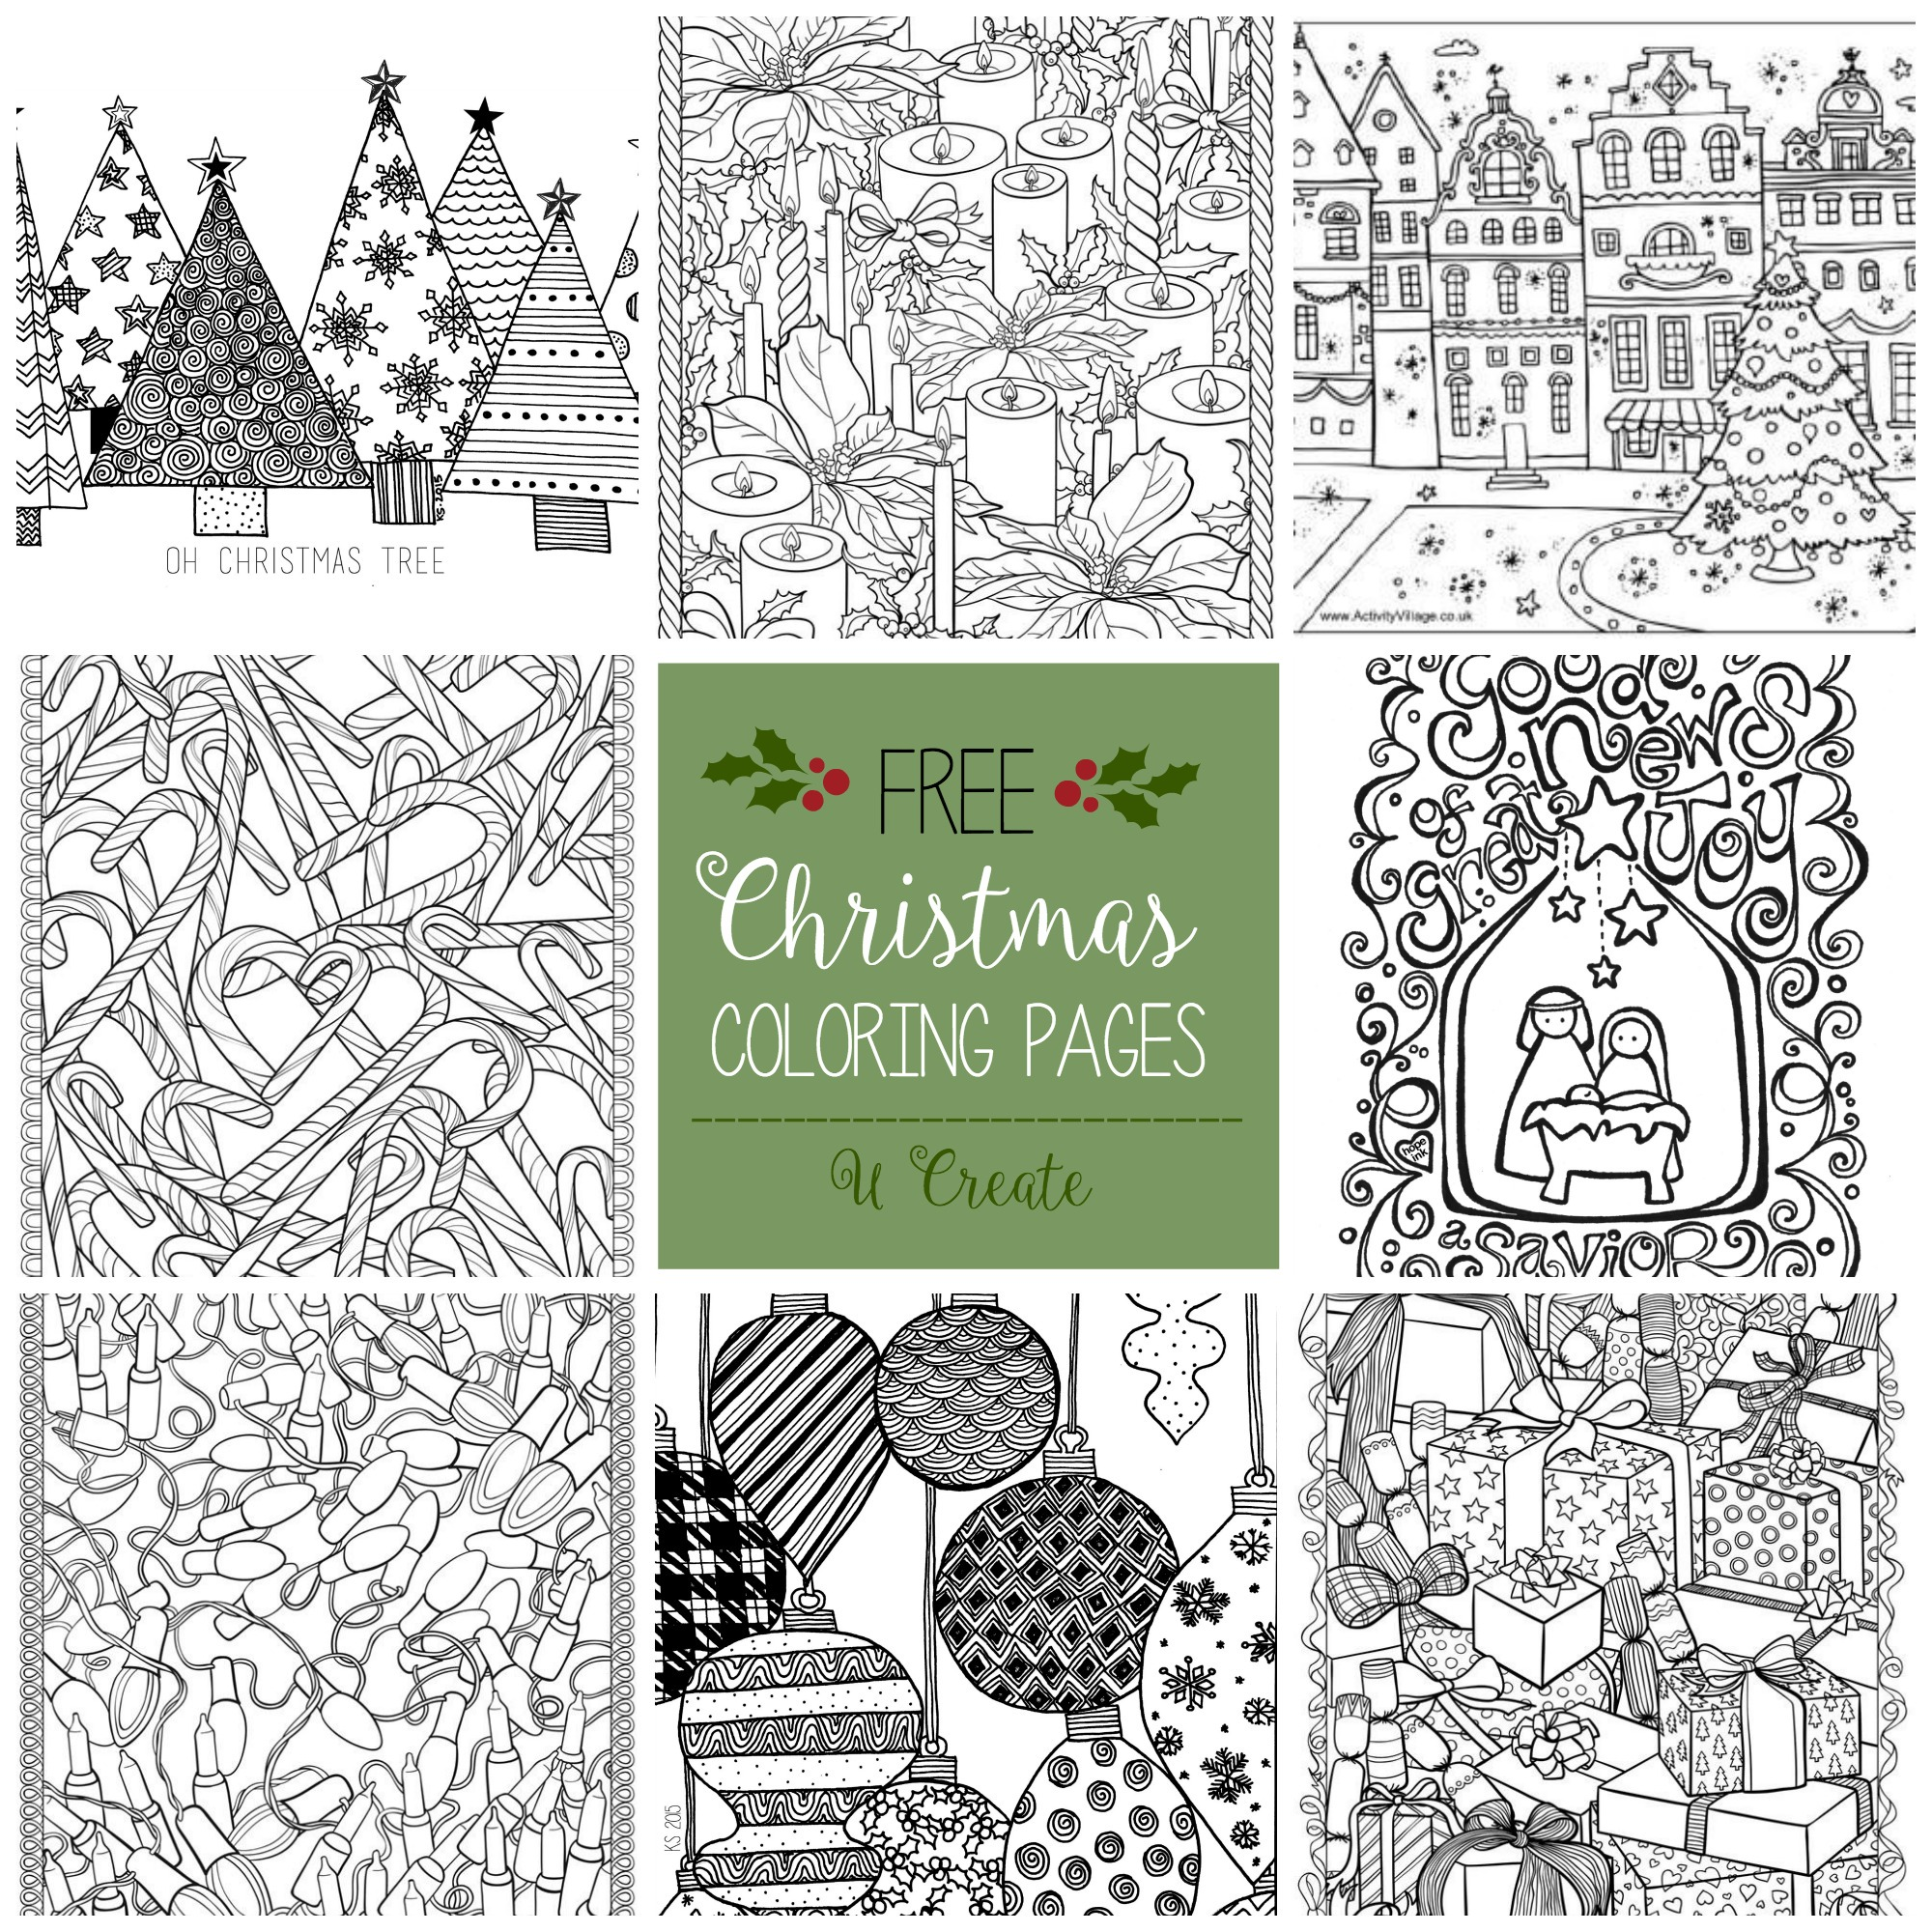 Christmas Coloring Pages Older Students With Free Adult U Create